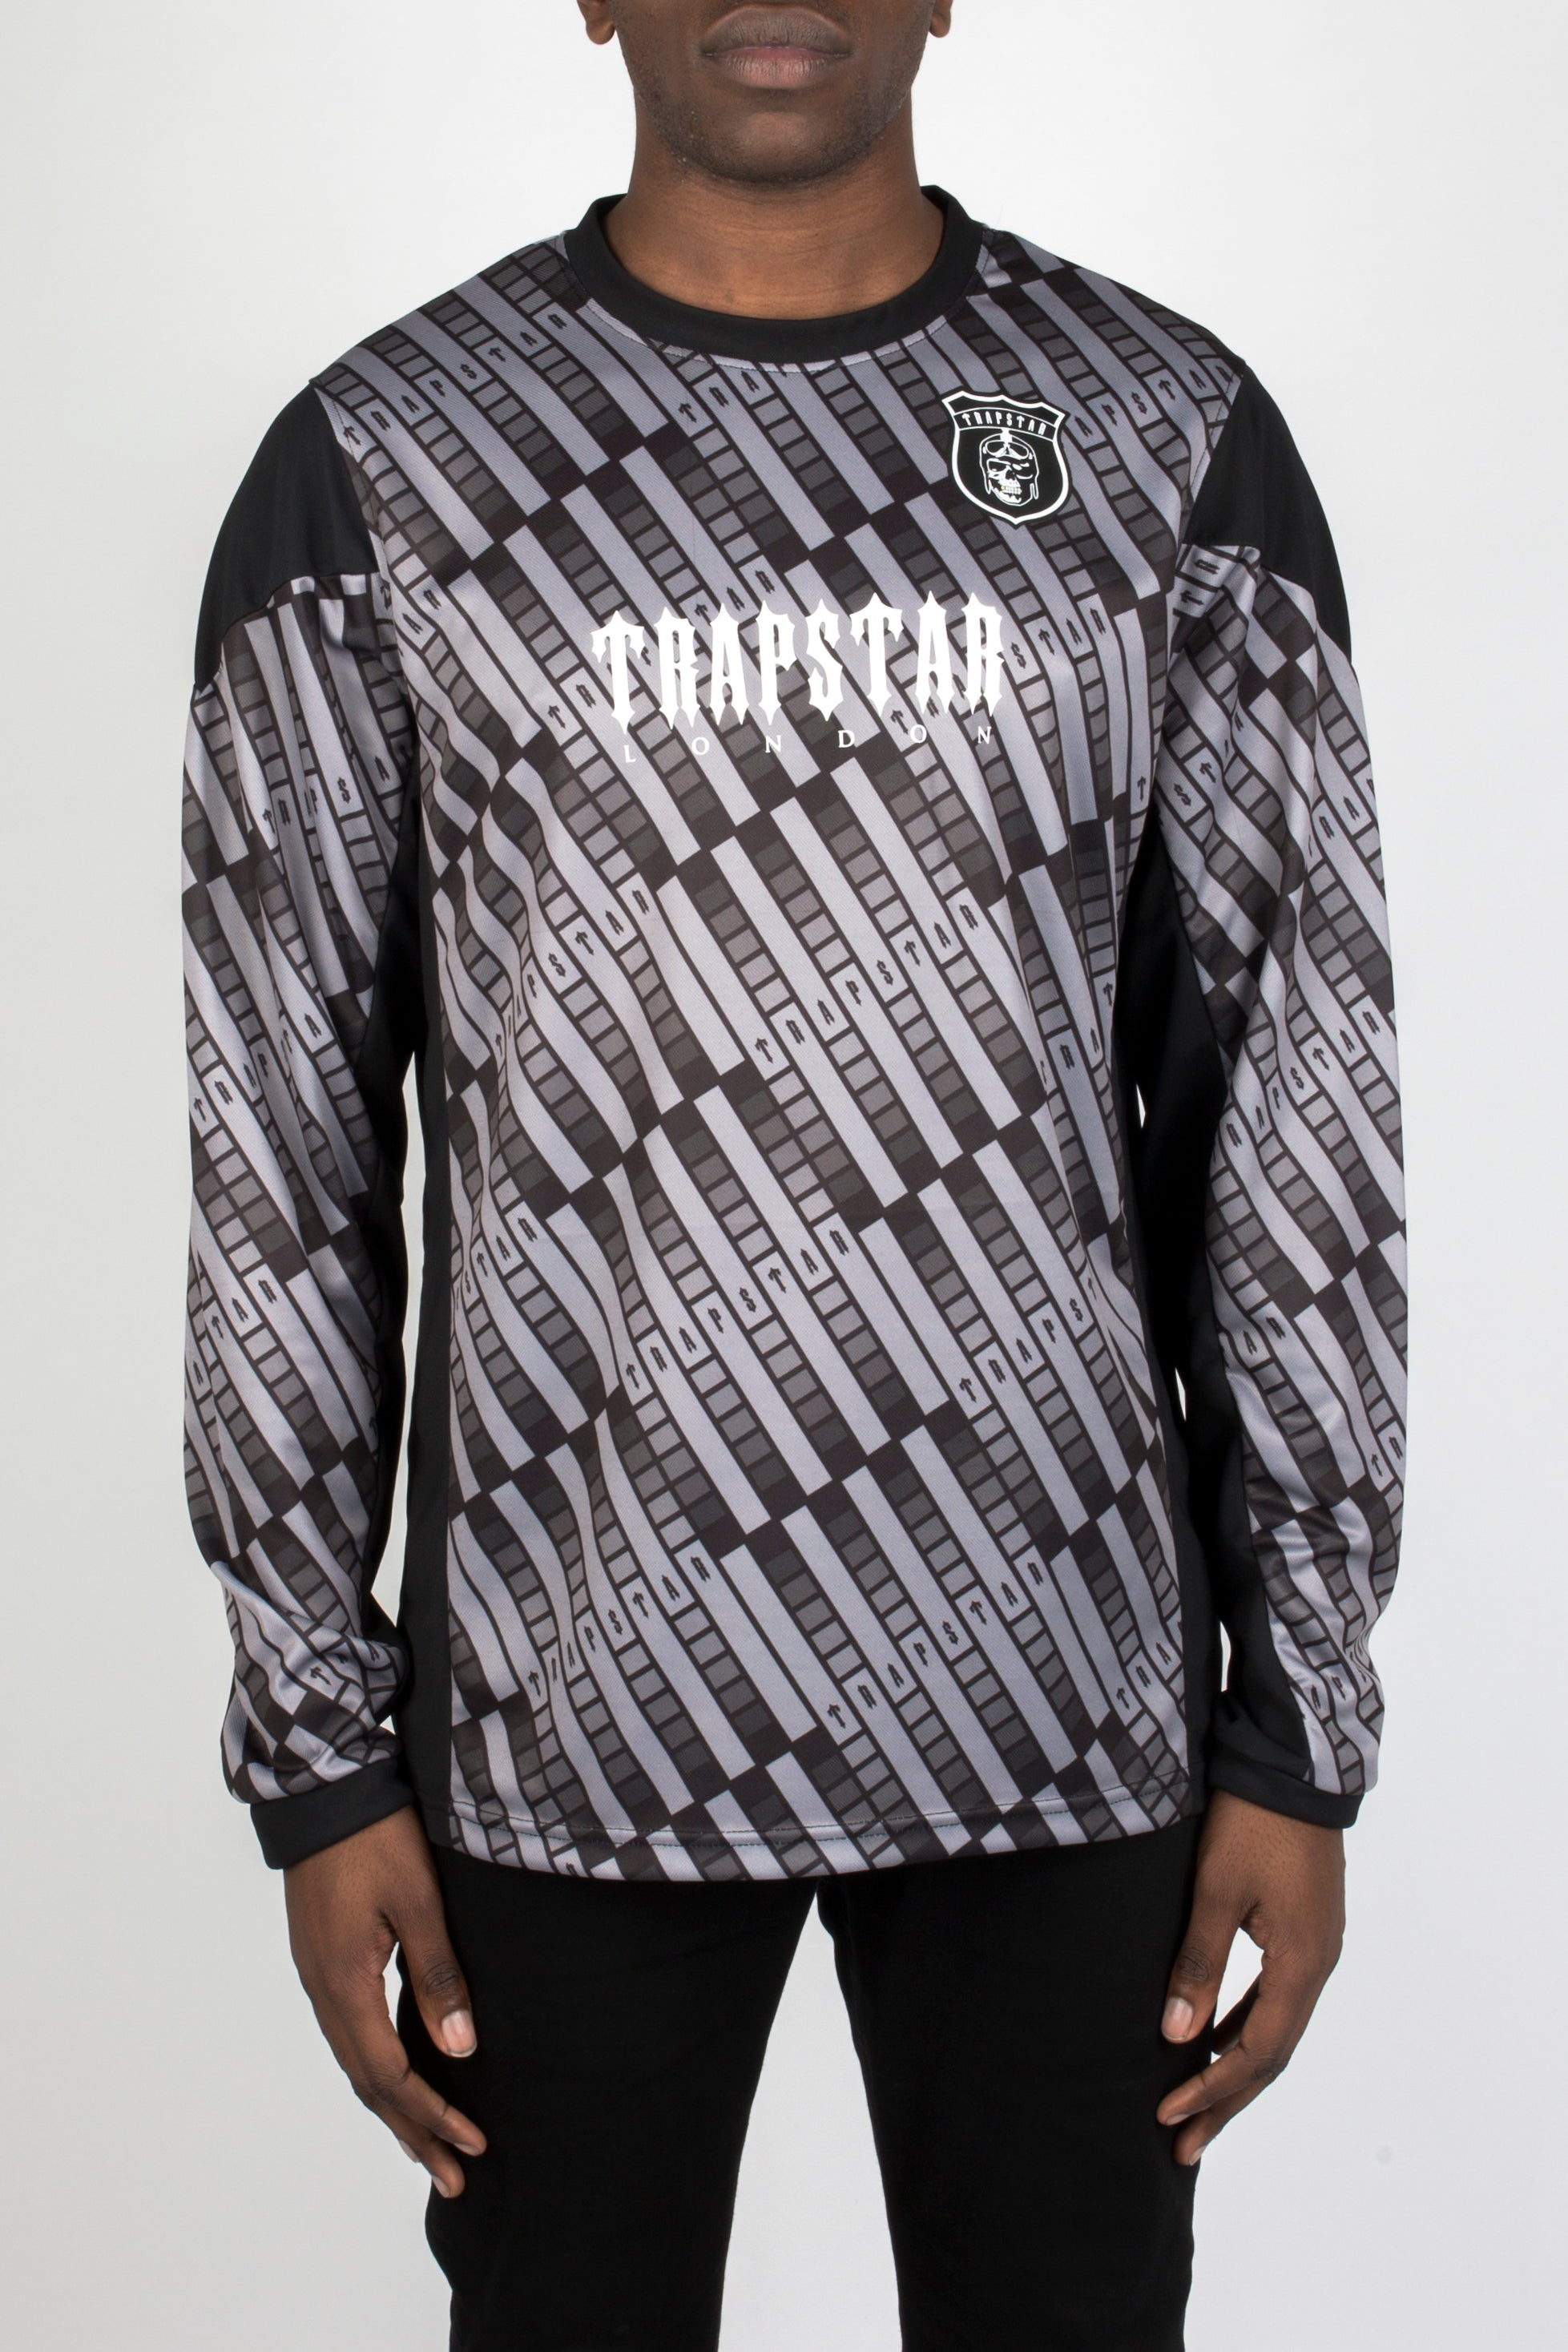 Trapstar L/S Football Top - Home Jersey